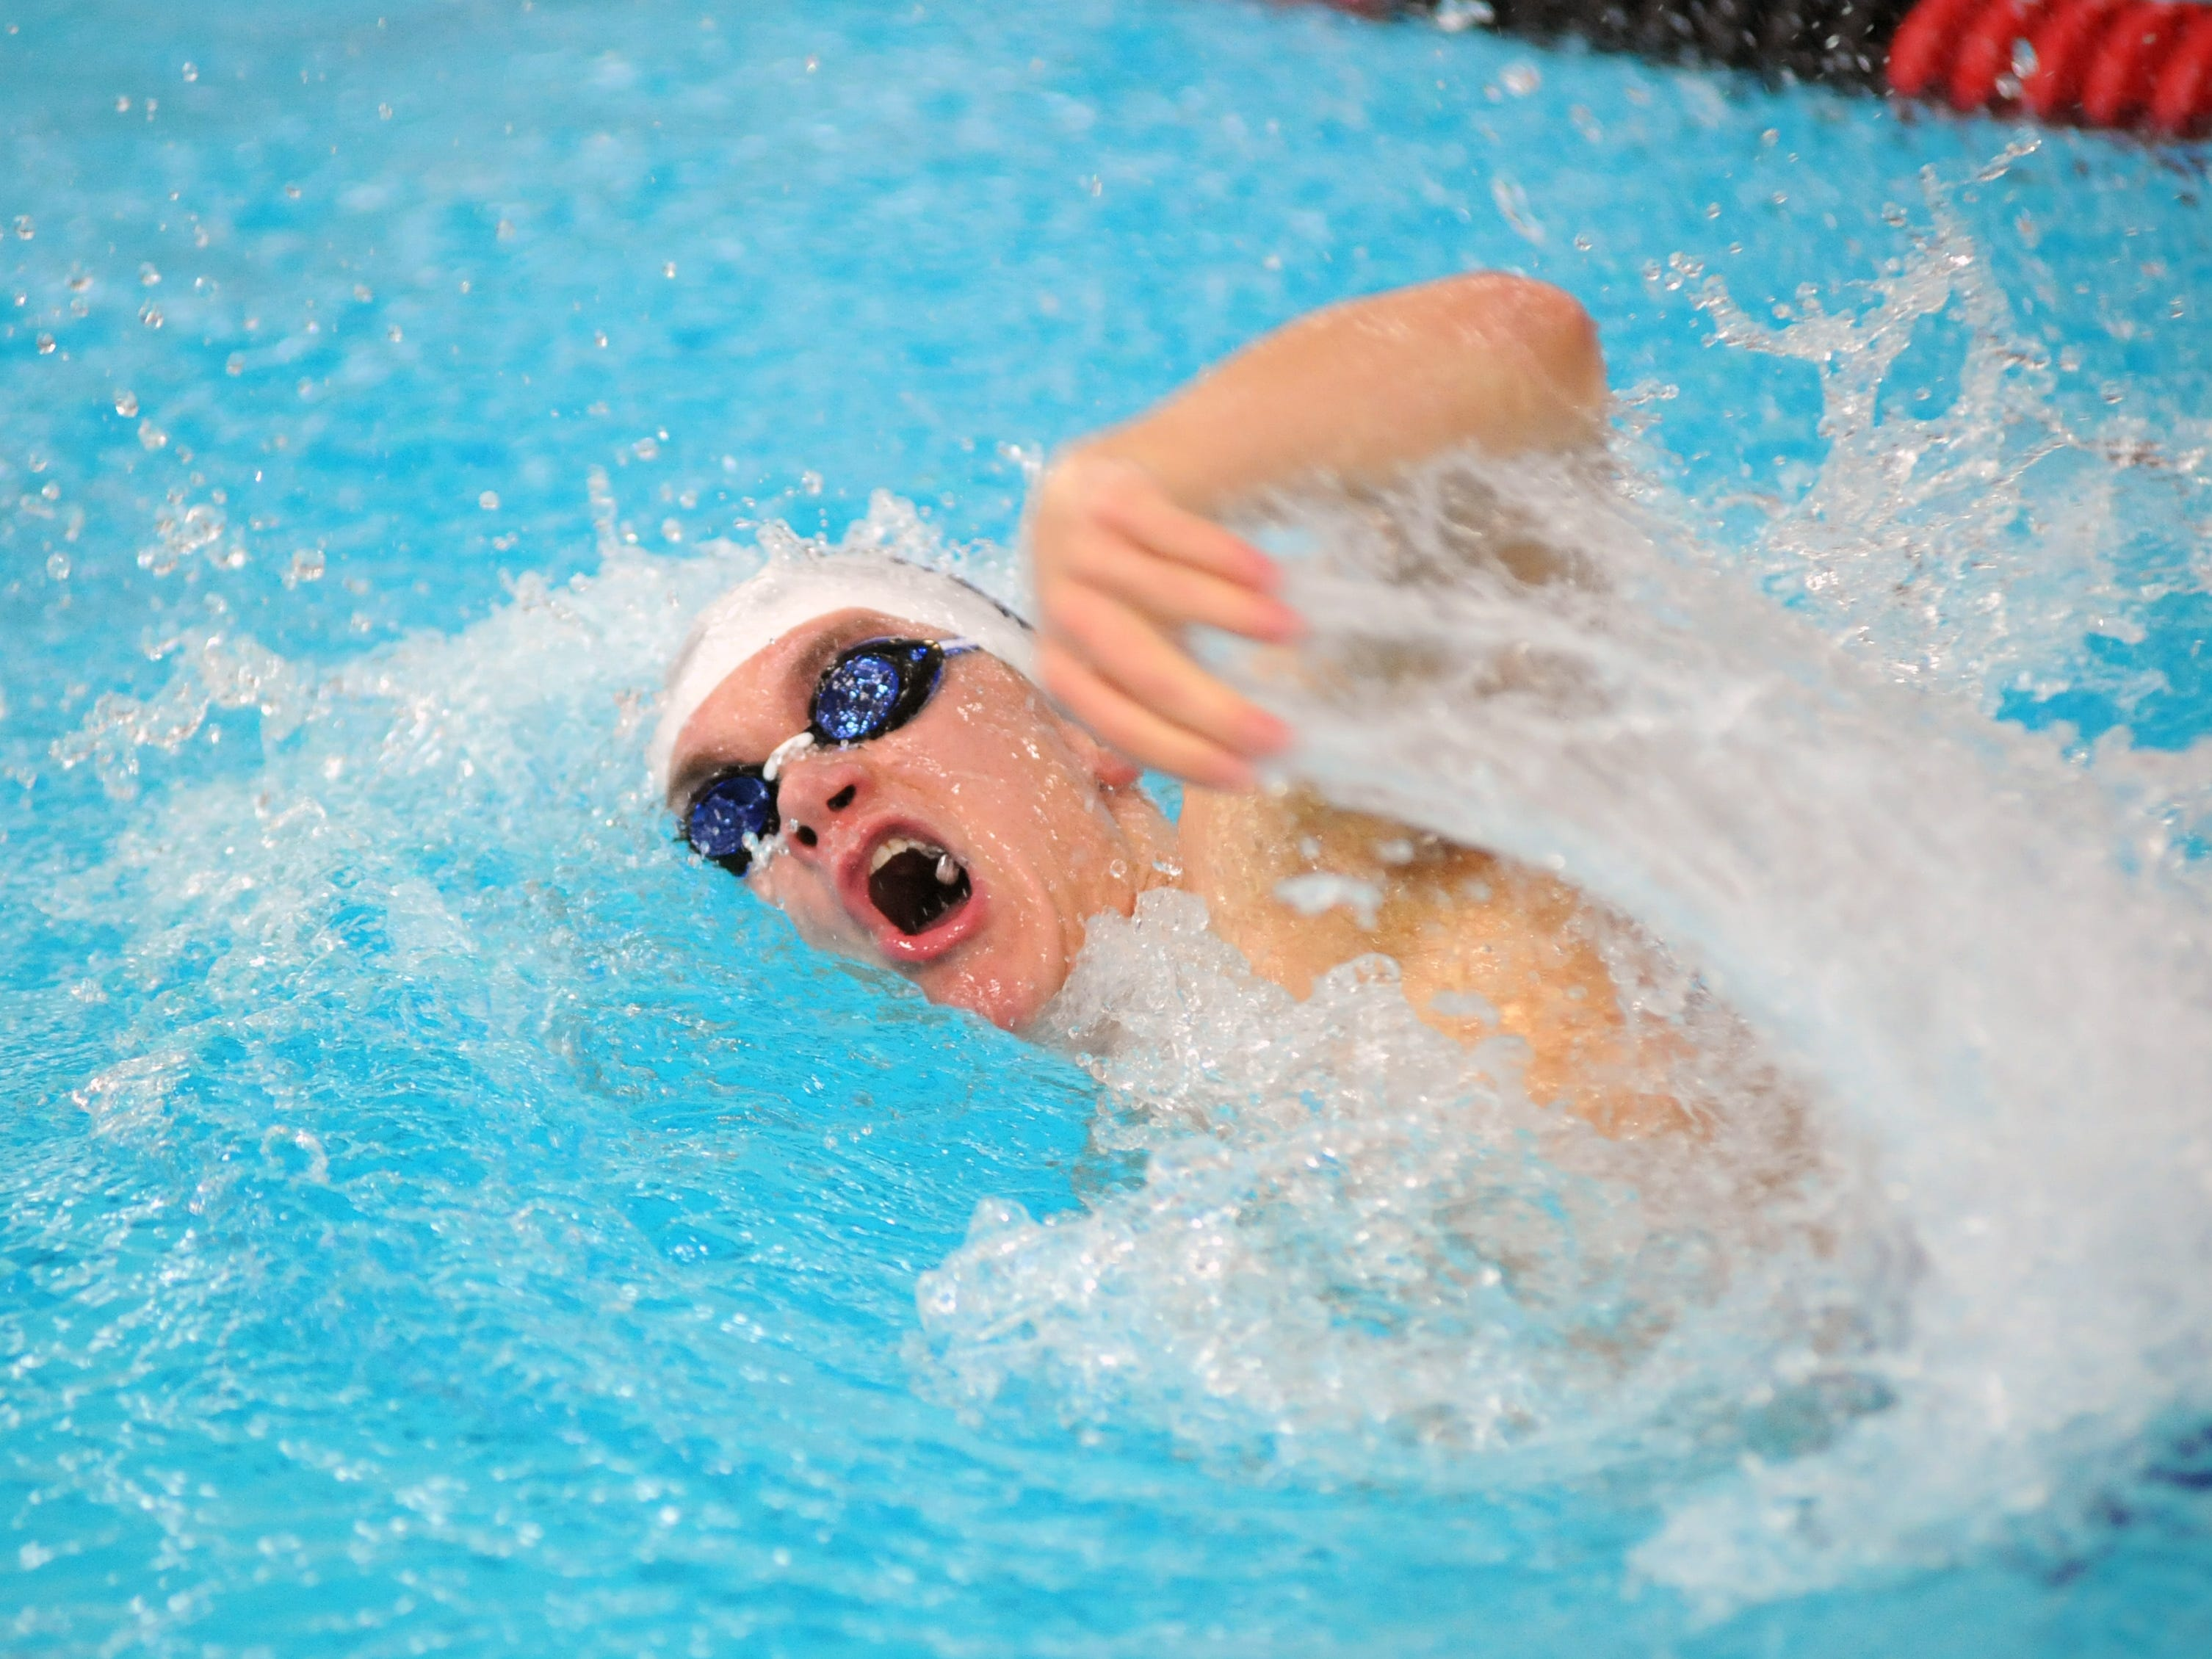 Zanesville's David Griffin competes in the 200 meter medley relay Saturday during the 2015 Coshocton Invitational at Coshocton High School.